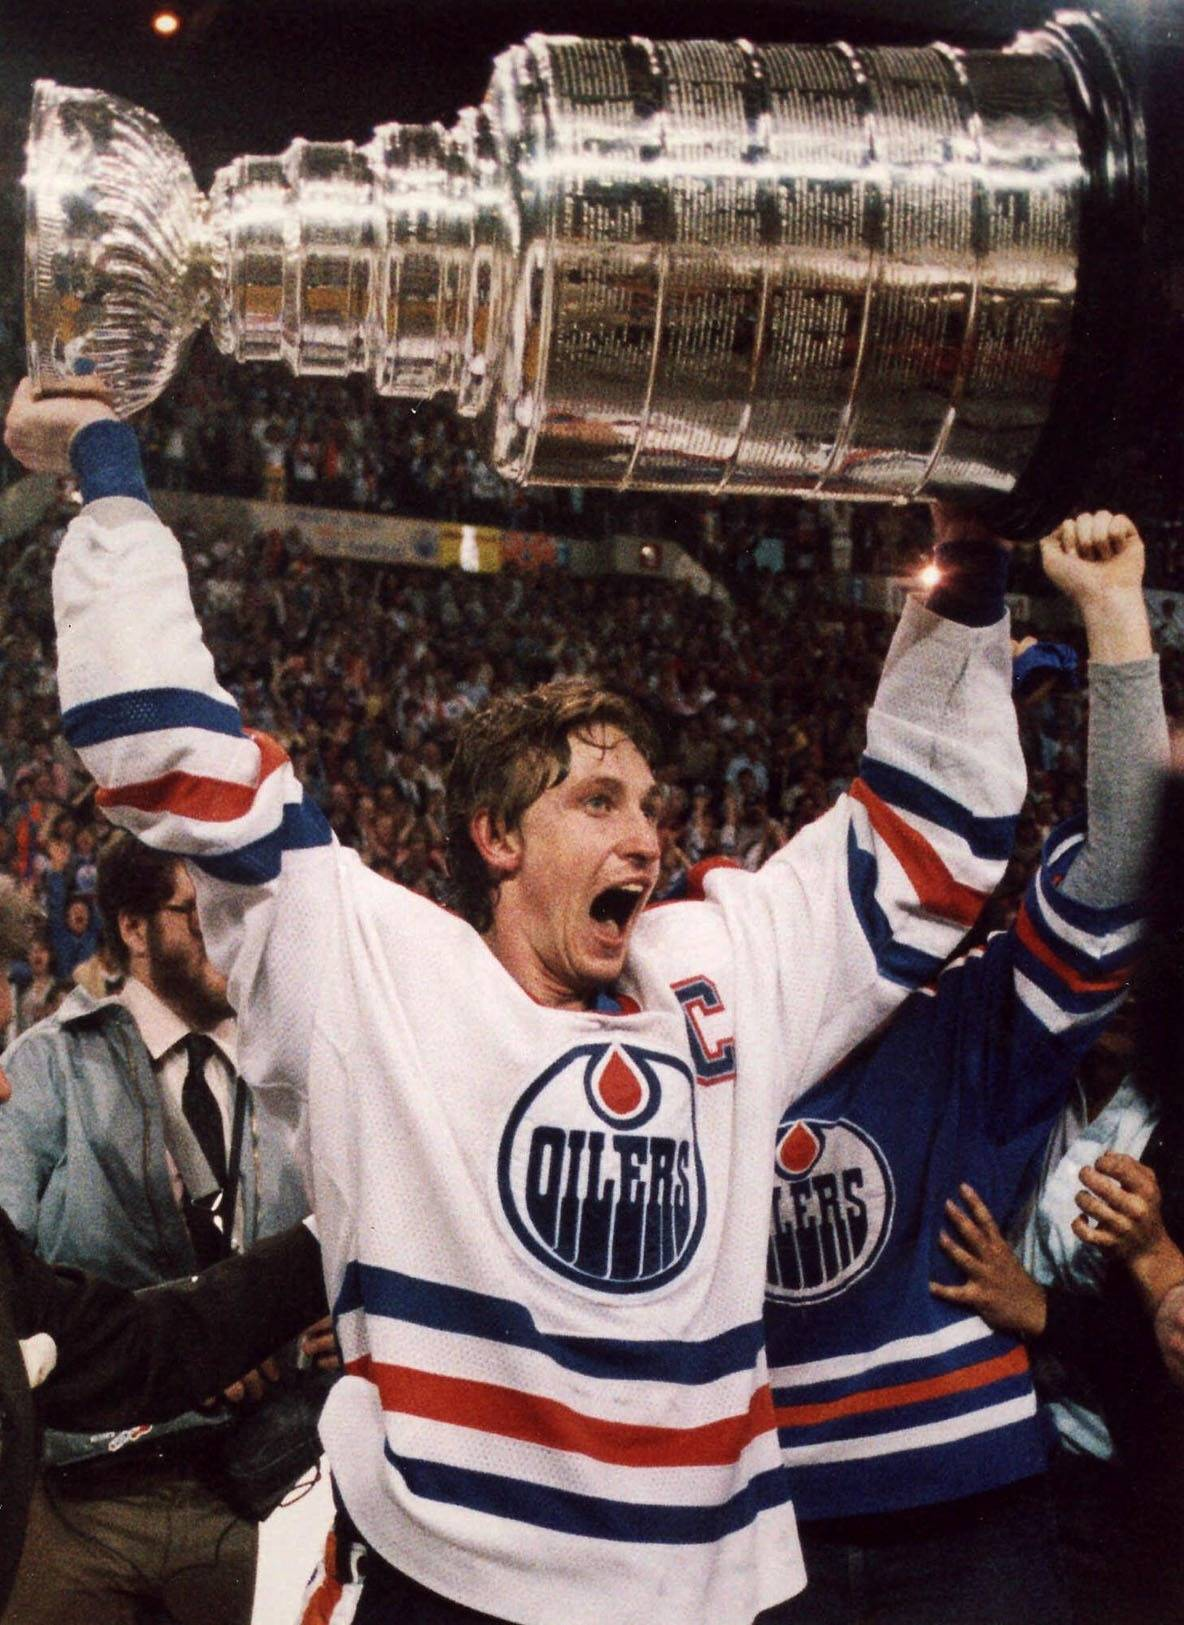 aad397f05 Edmonton Oilers hockey great Wayne Gretzky brought the city and its fans  countless memories at Northlands